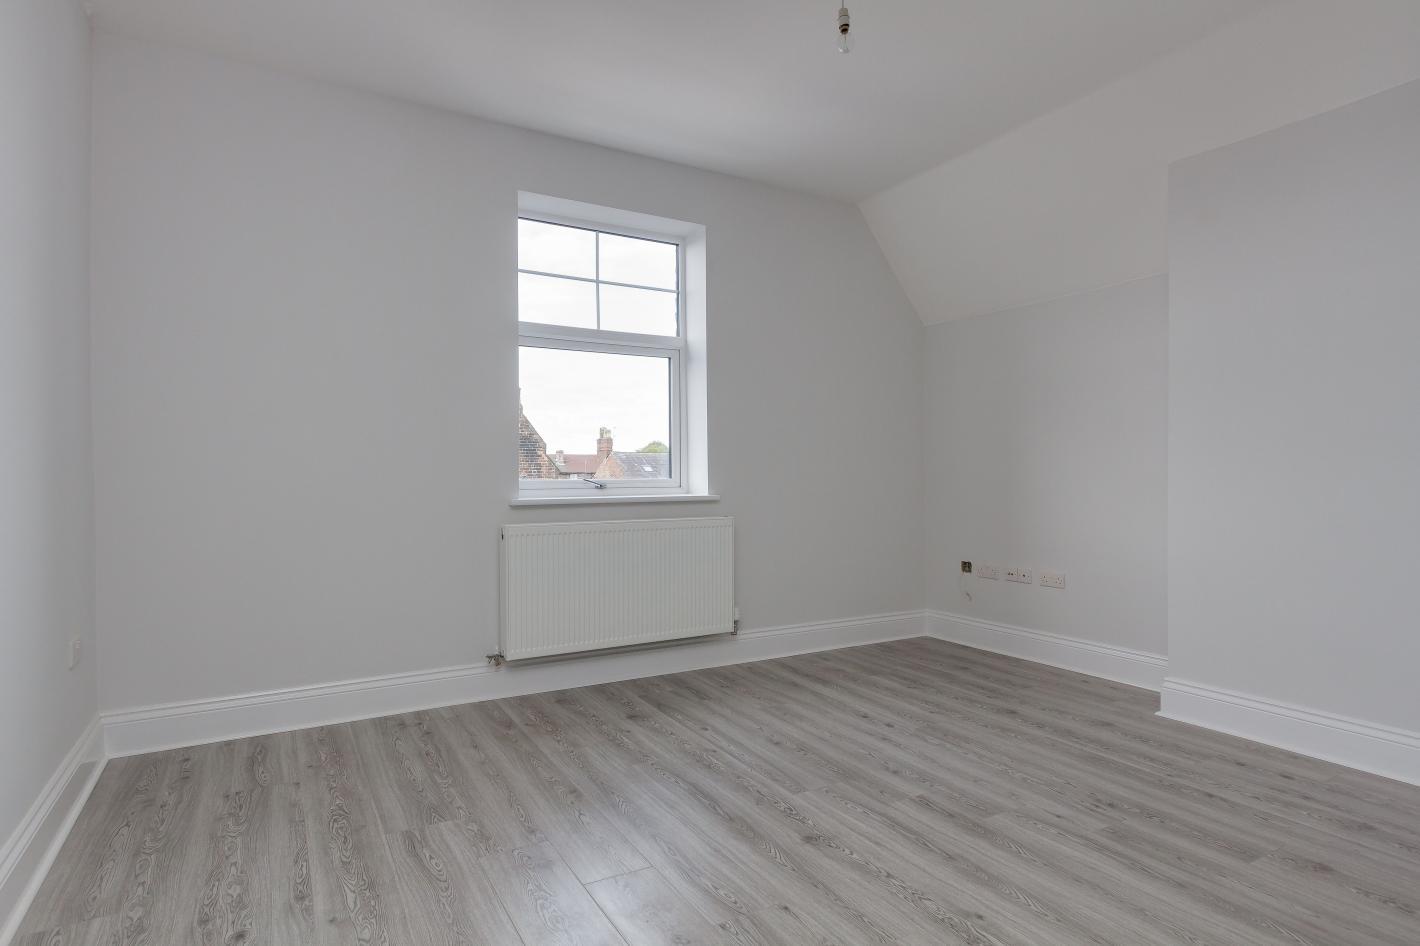 bedroom in buy to let property, white walls, single window on far wall and grey laminate flooring